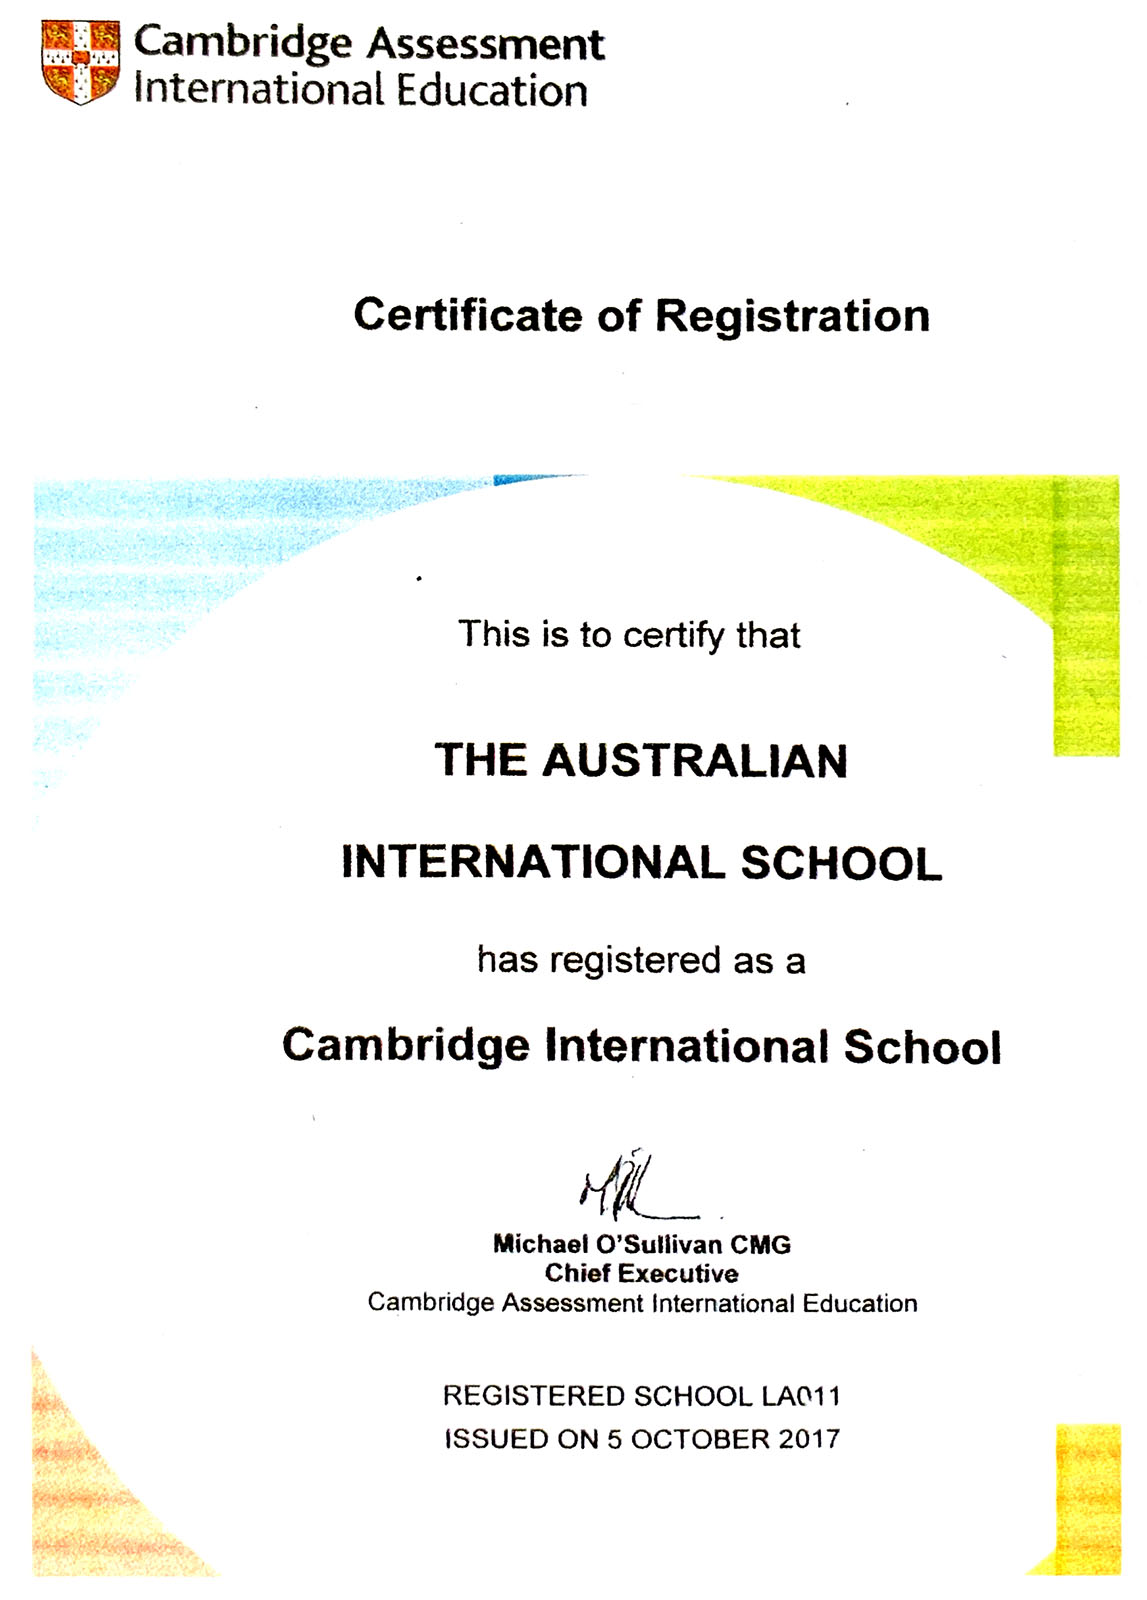 AIS certificate of registration